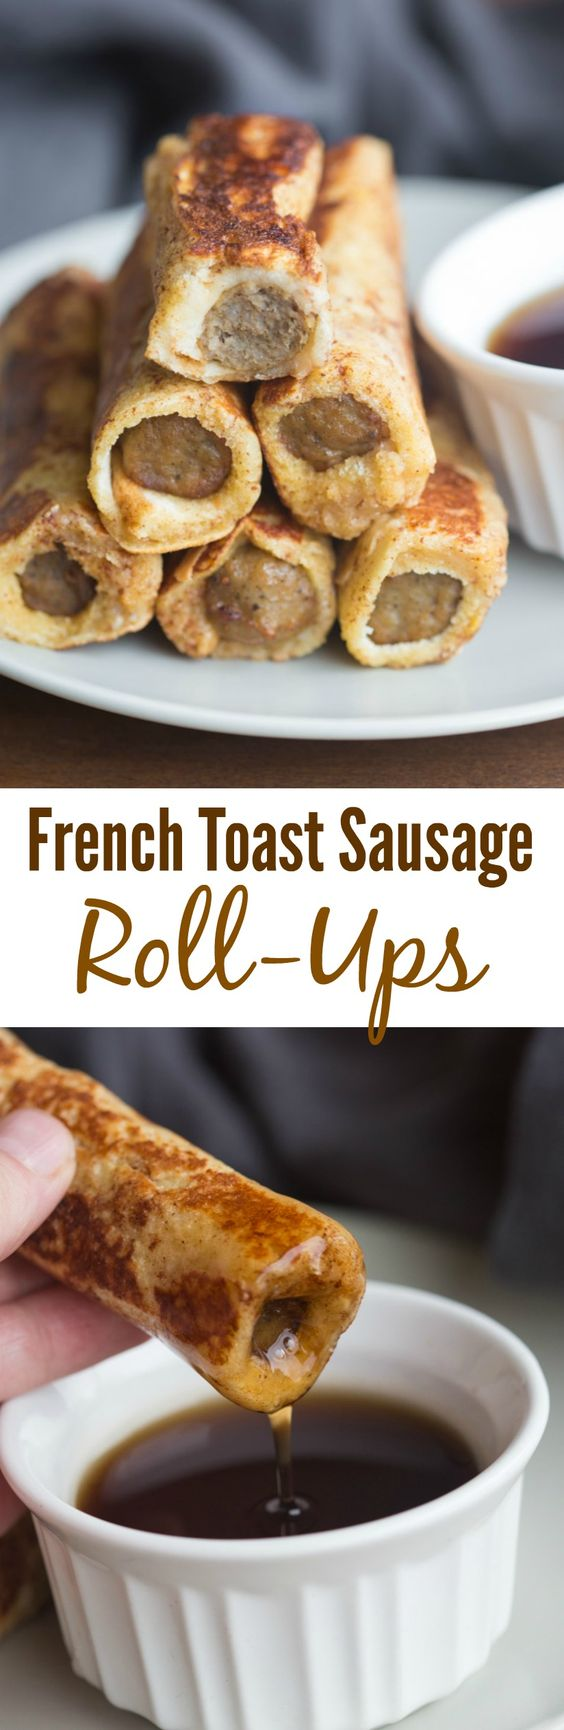 Easy to make and fun to eat, these French Toast Sausage Roll-Ups are always…